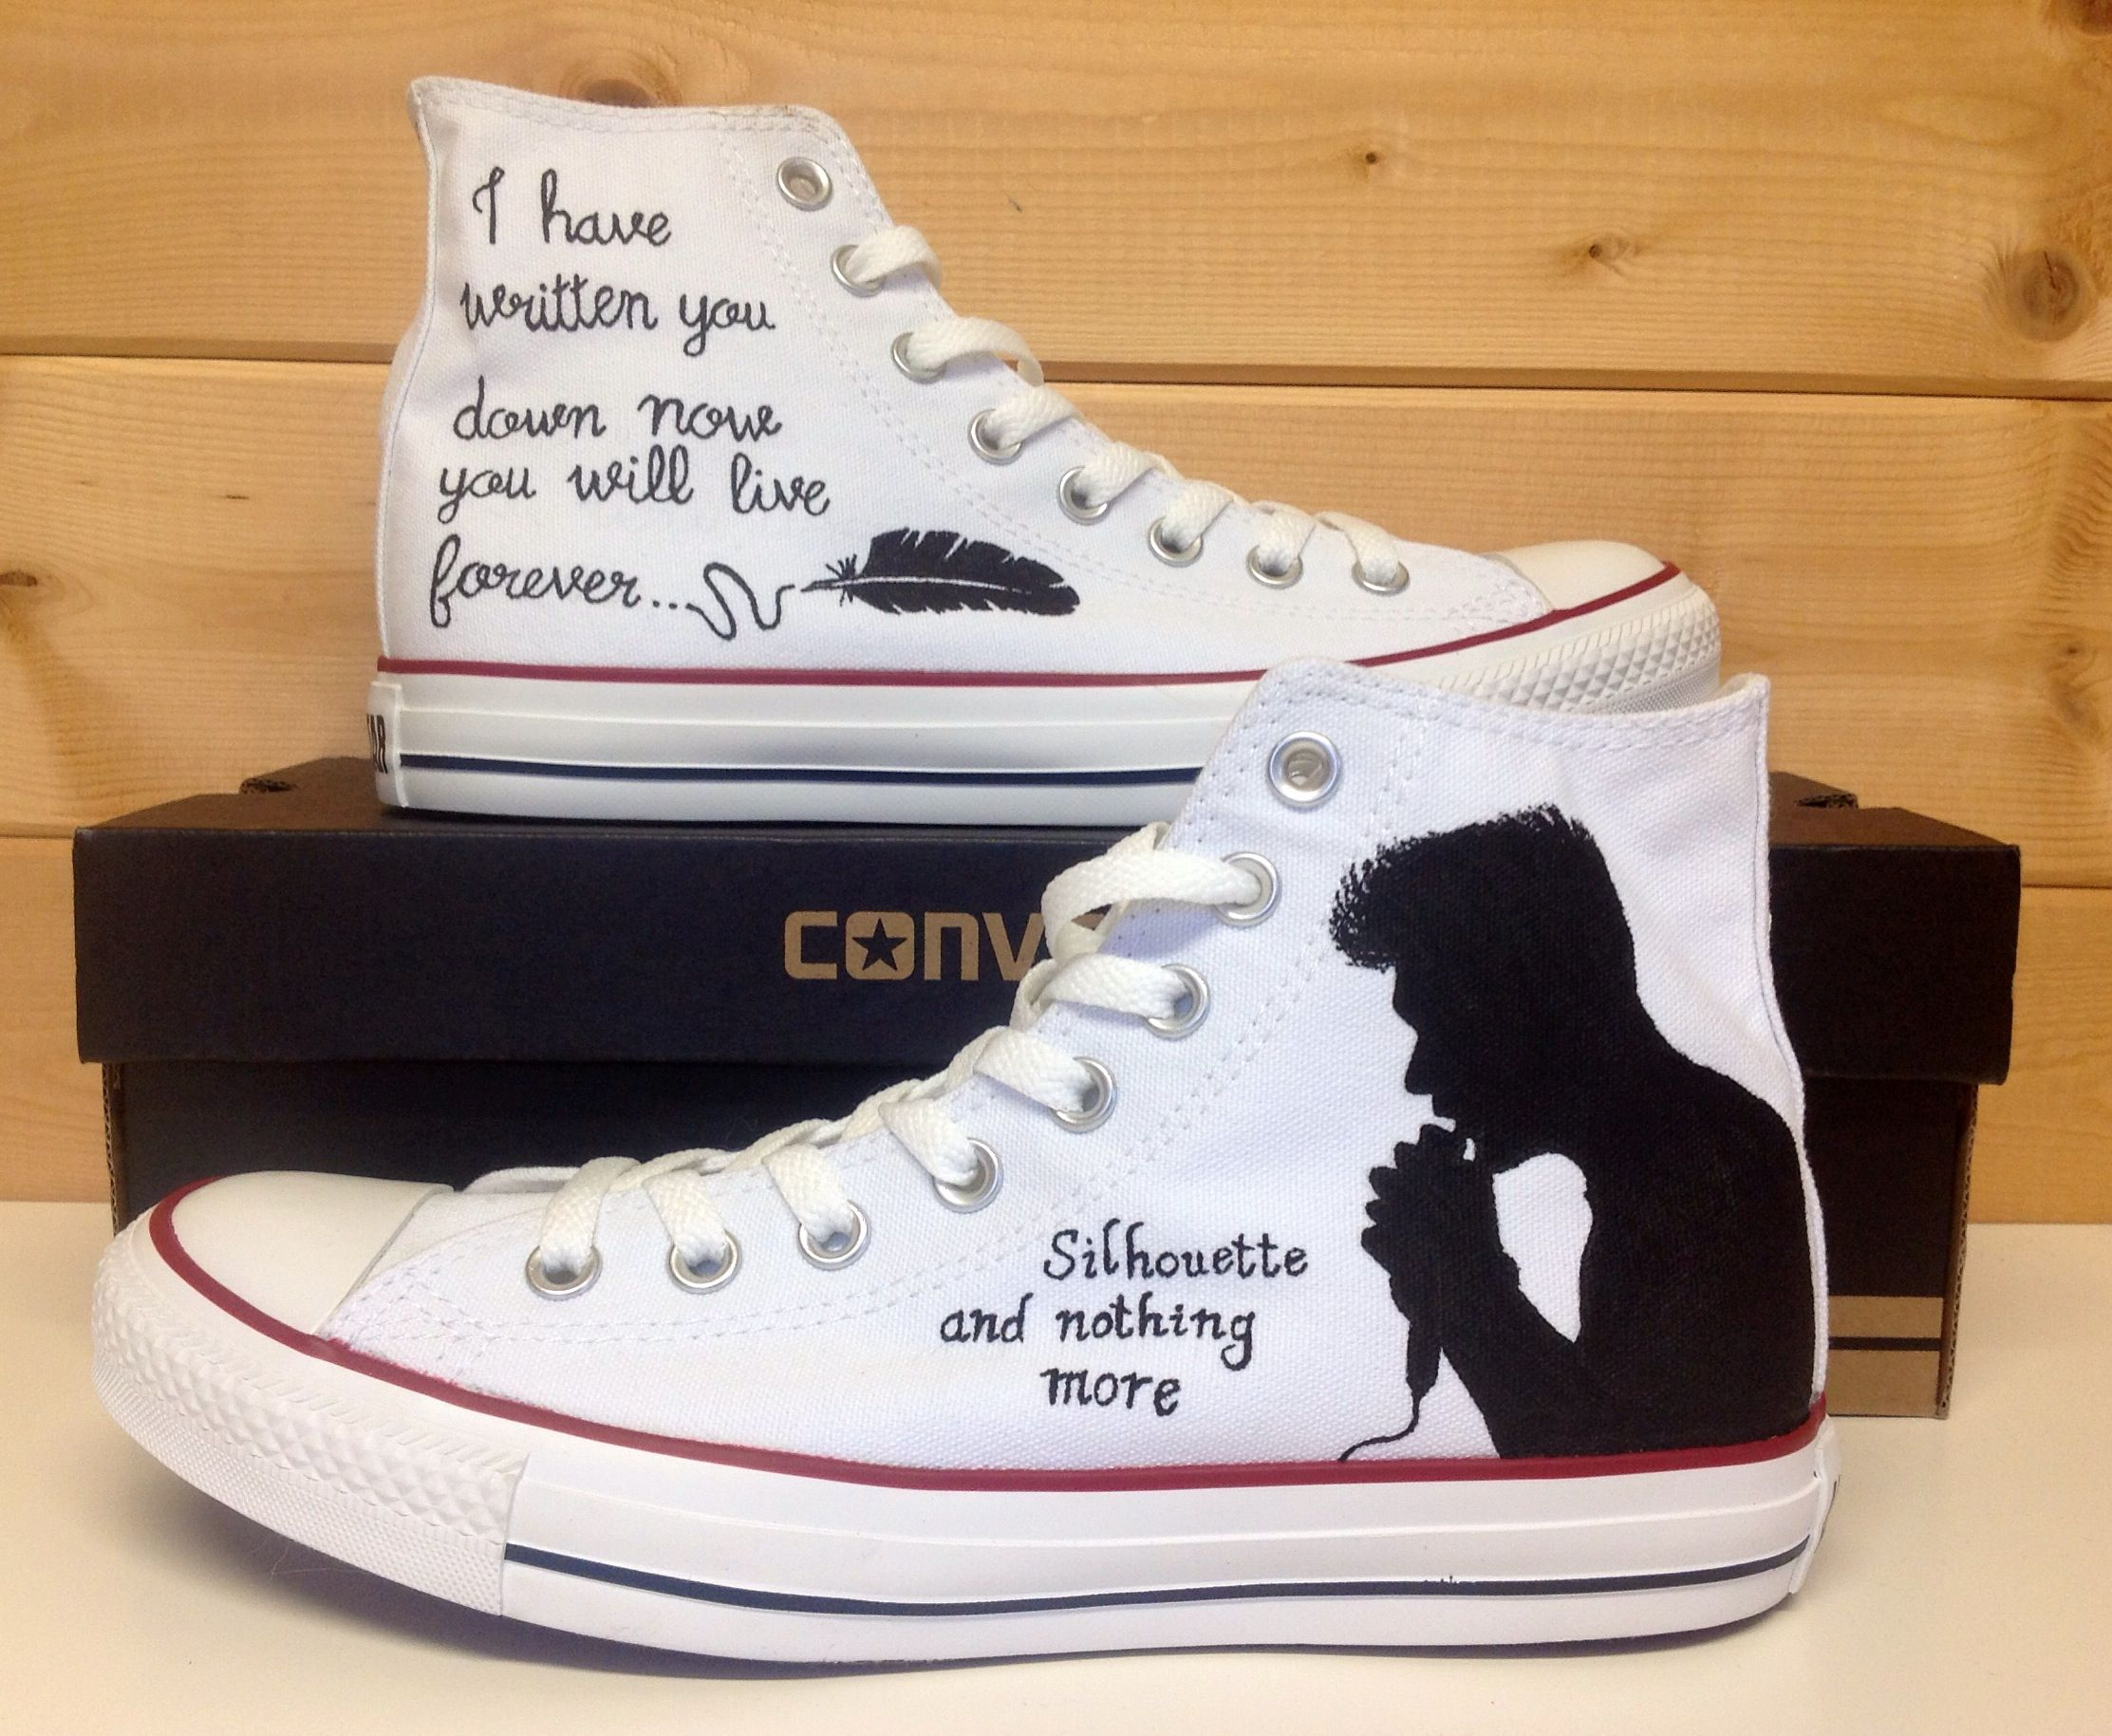 converse shoes wearing socks with slippers too hot lyrics